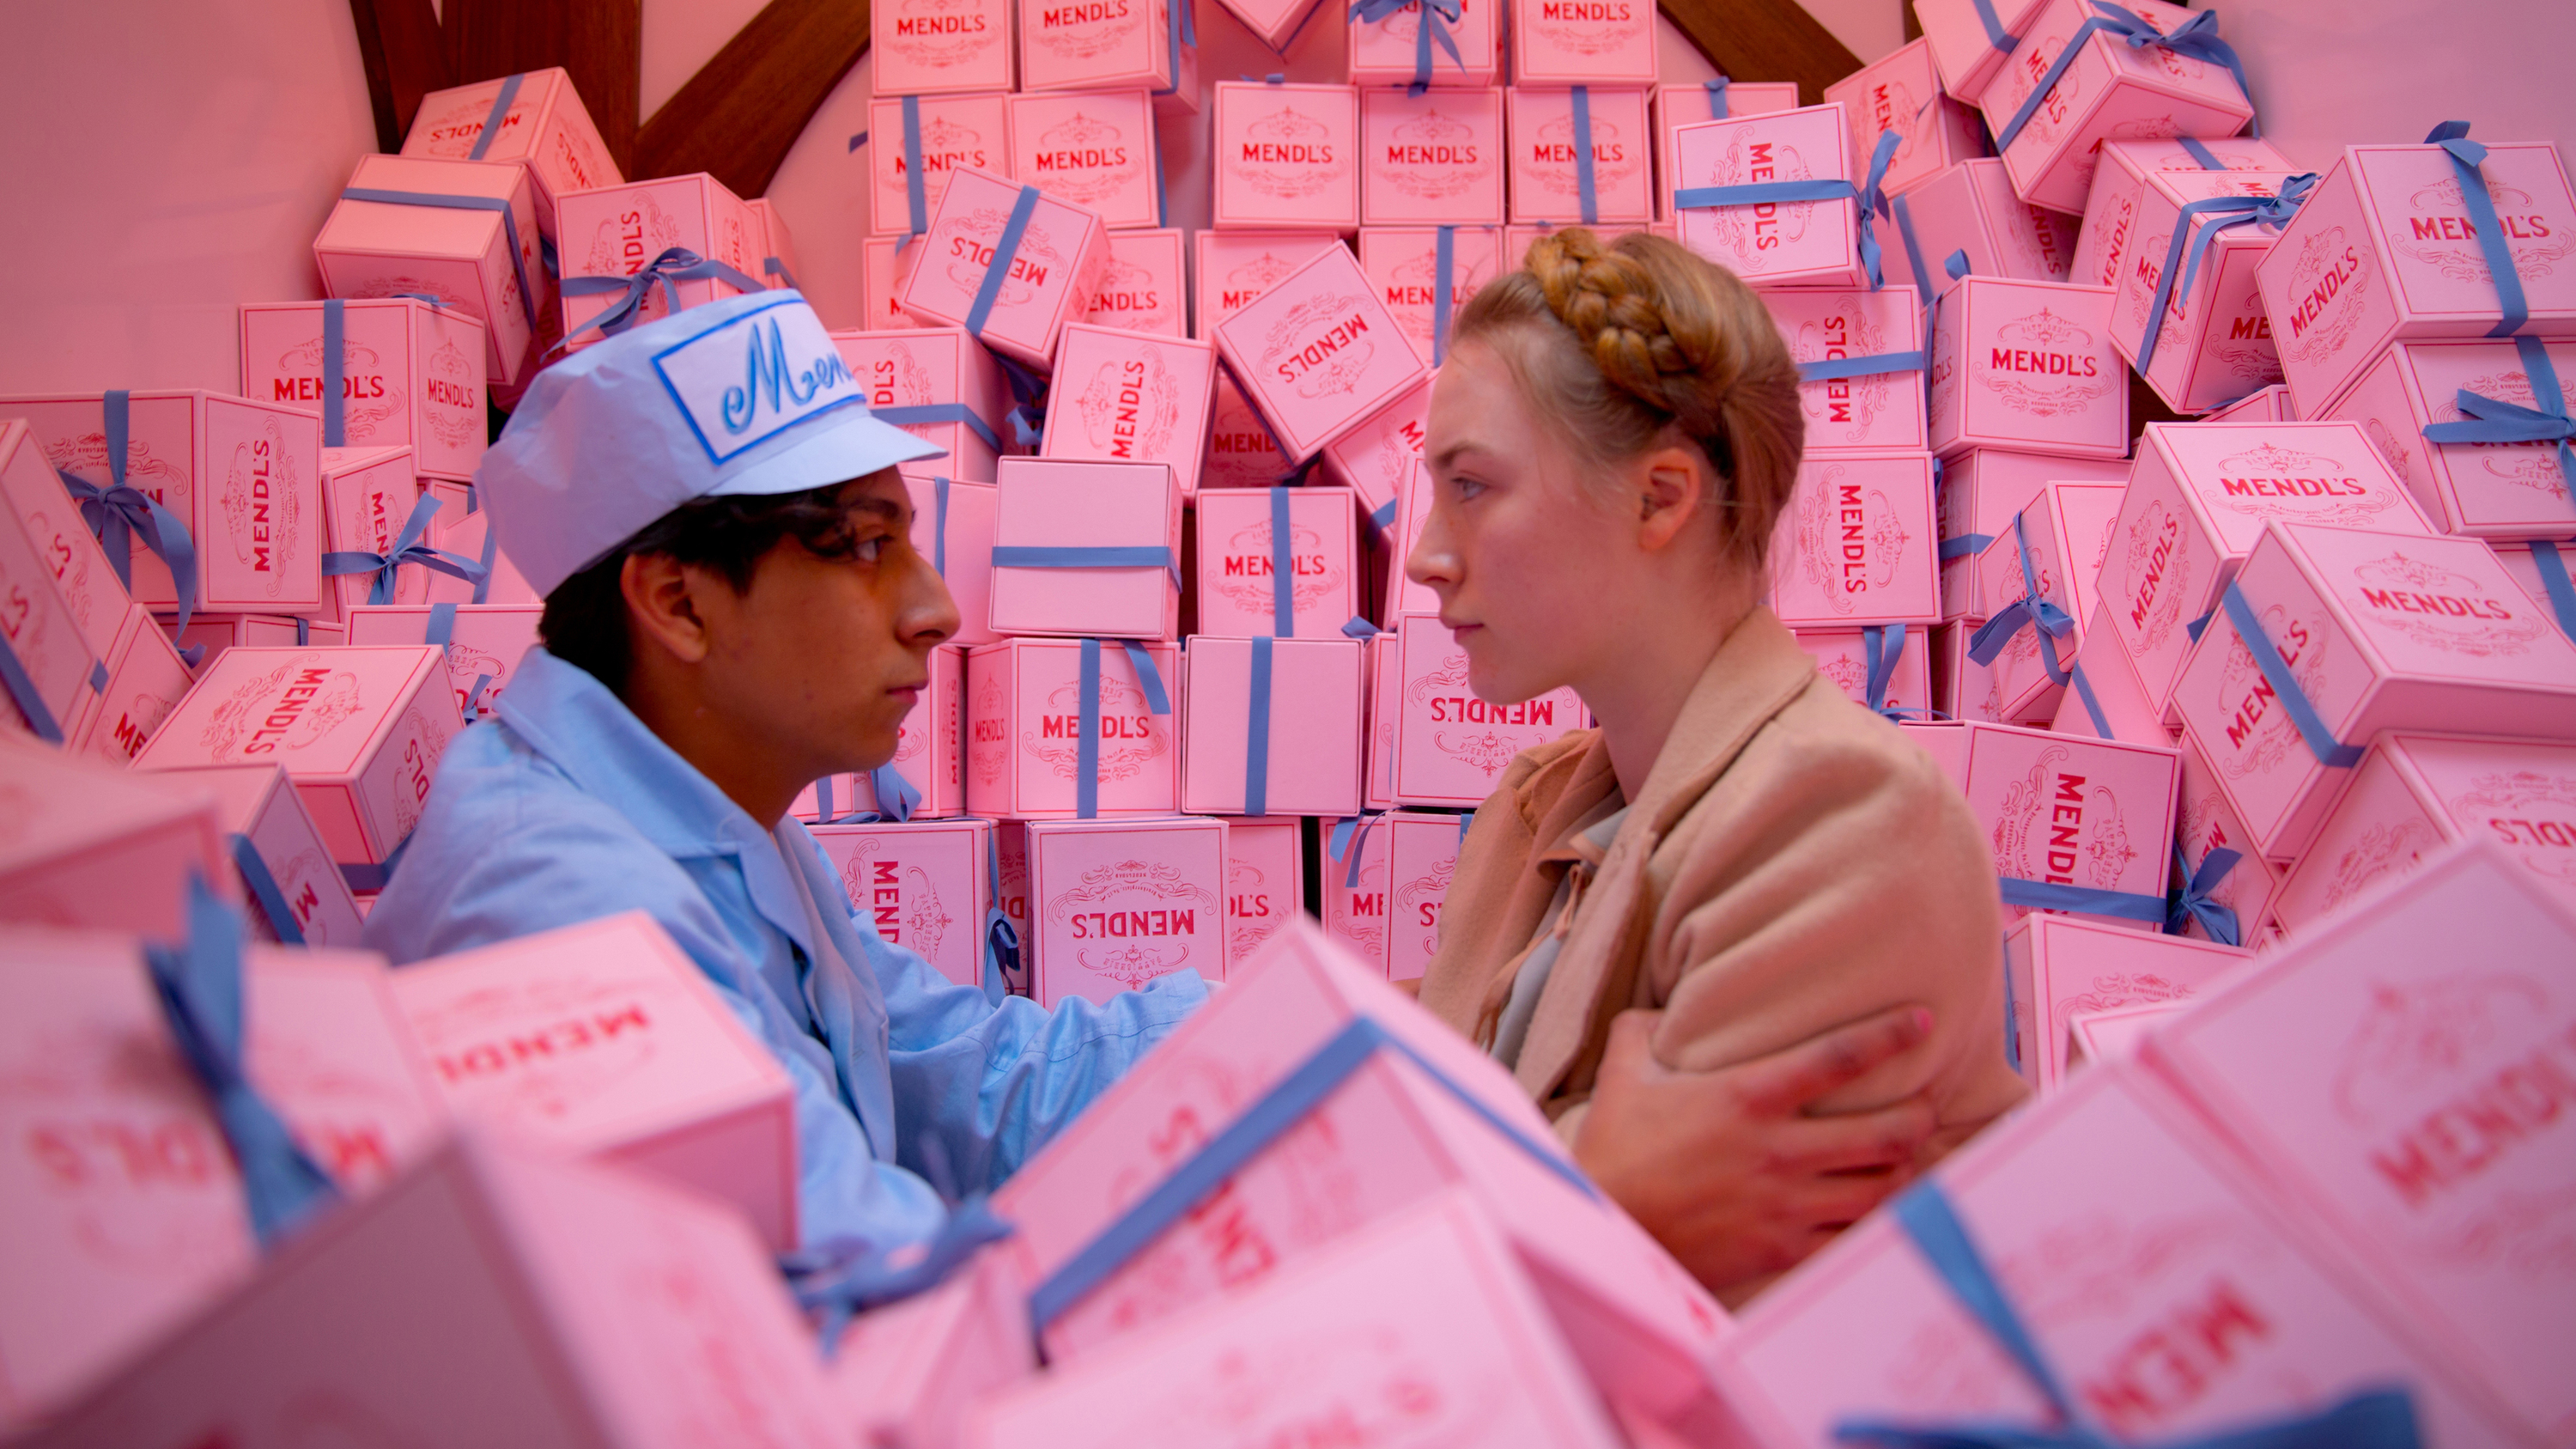 Eat | See | Hear presents The Grand Budapest Hotel